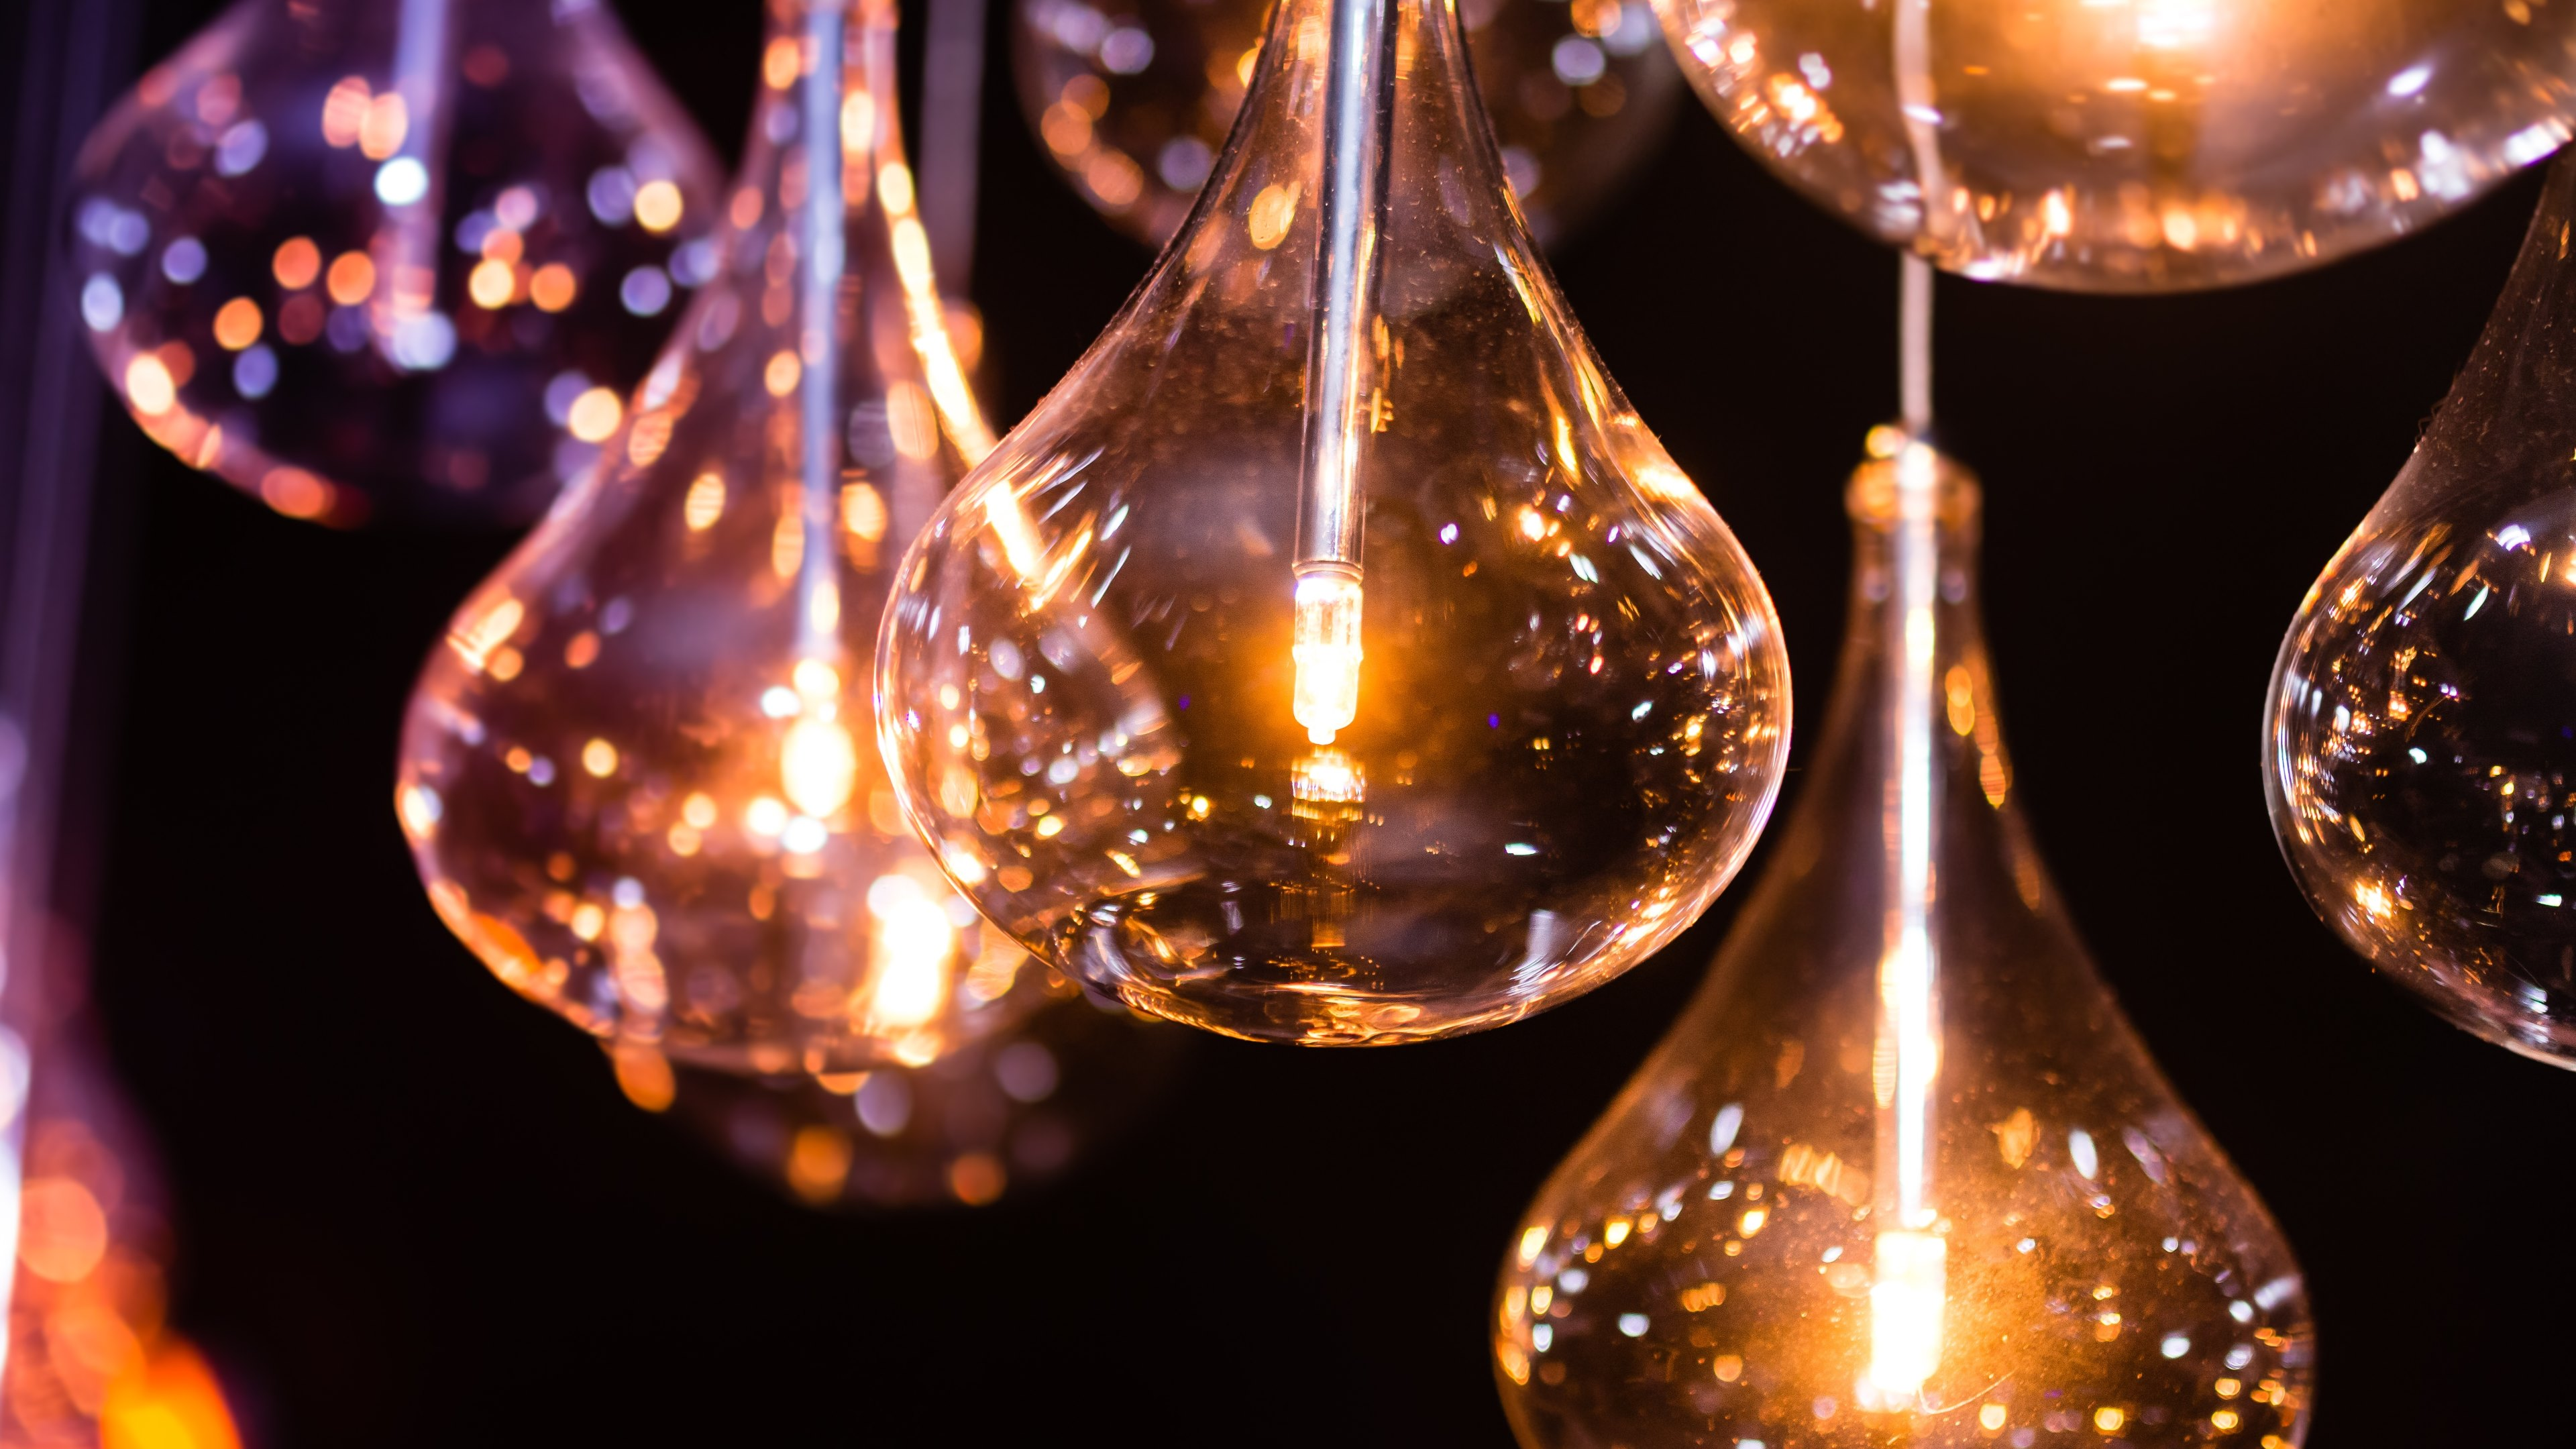 Light Bulbs, light, lights, energy, electricity, yellow light